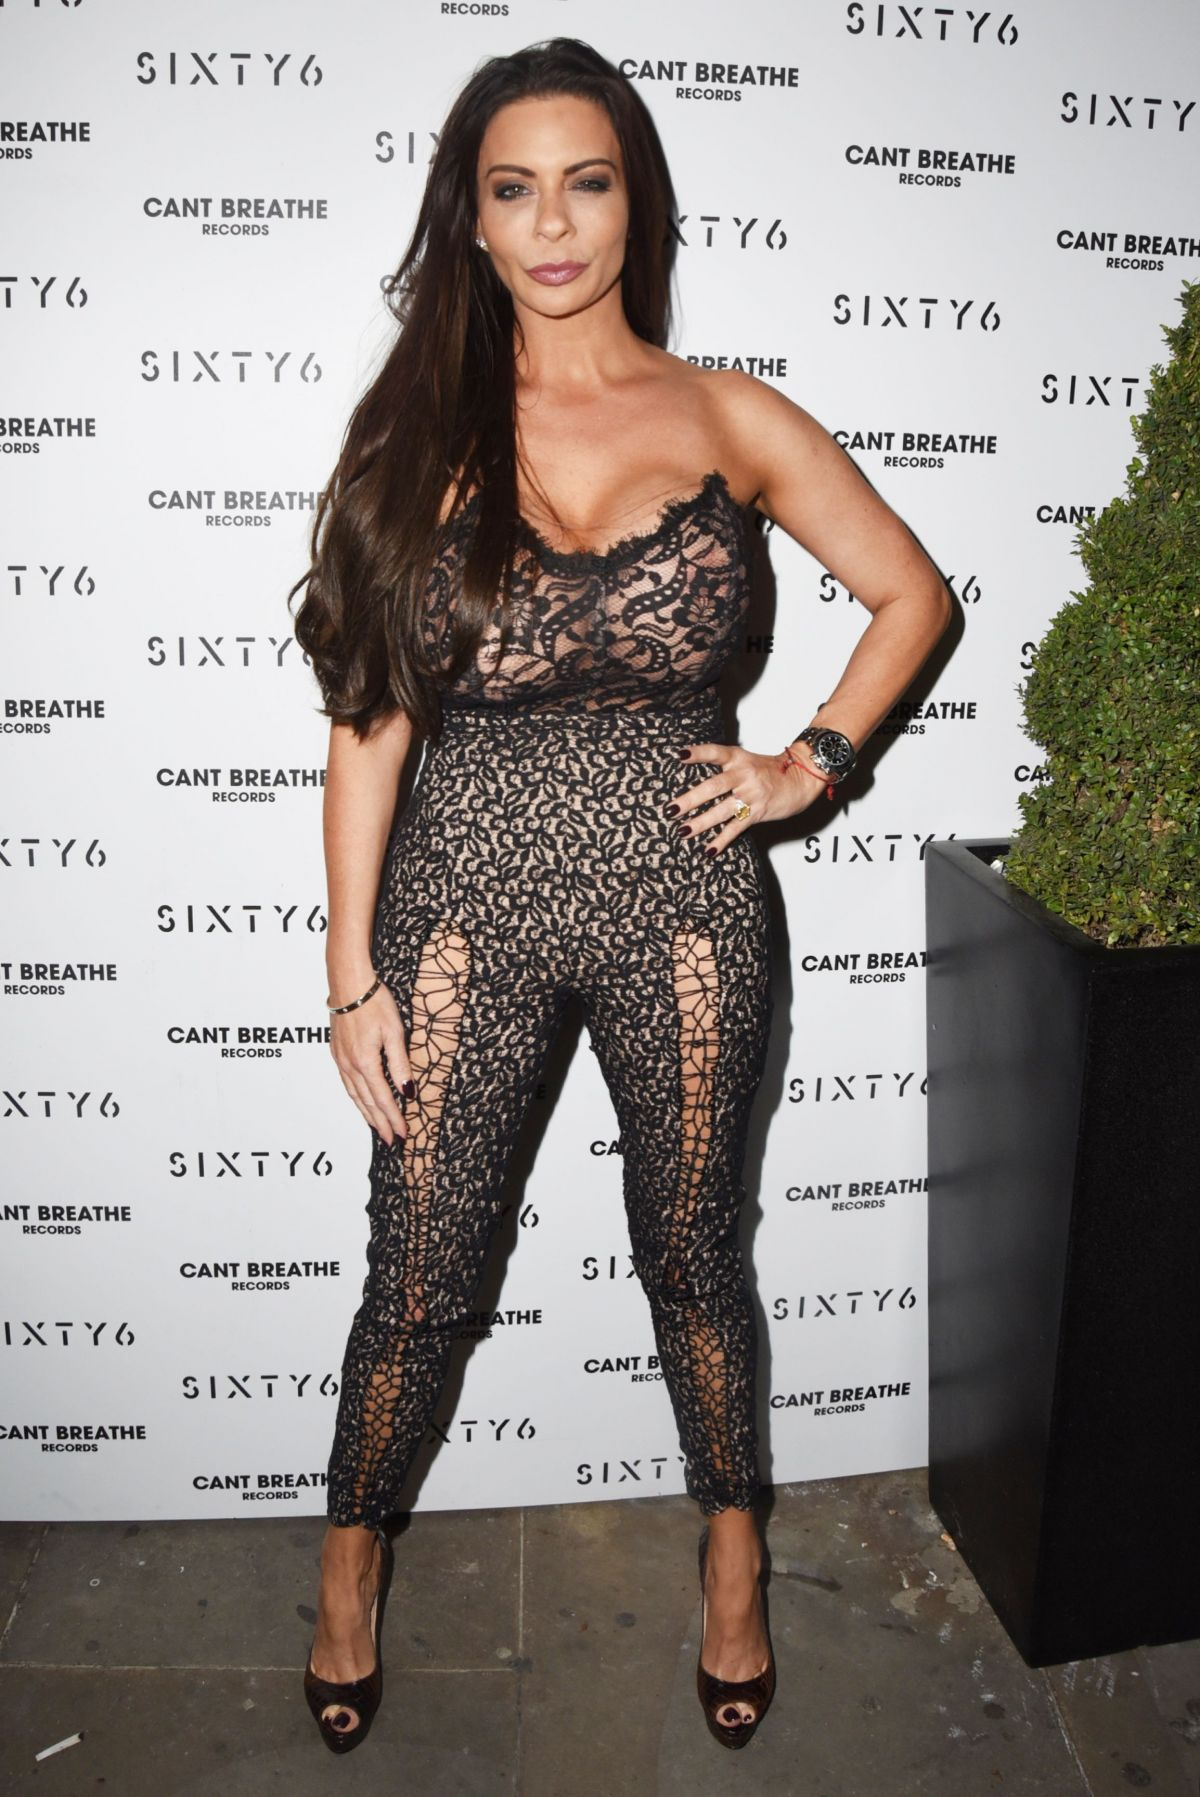 LINSEY DAWN MCKENZIE at Sixty6 Magazine Launch Party in